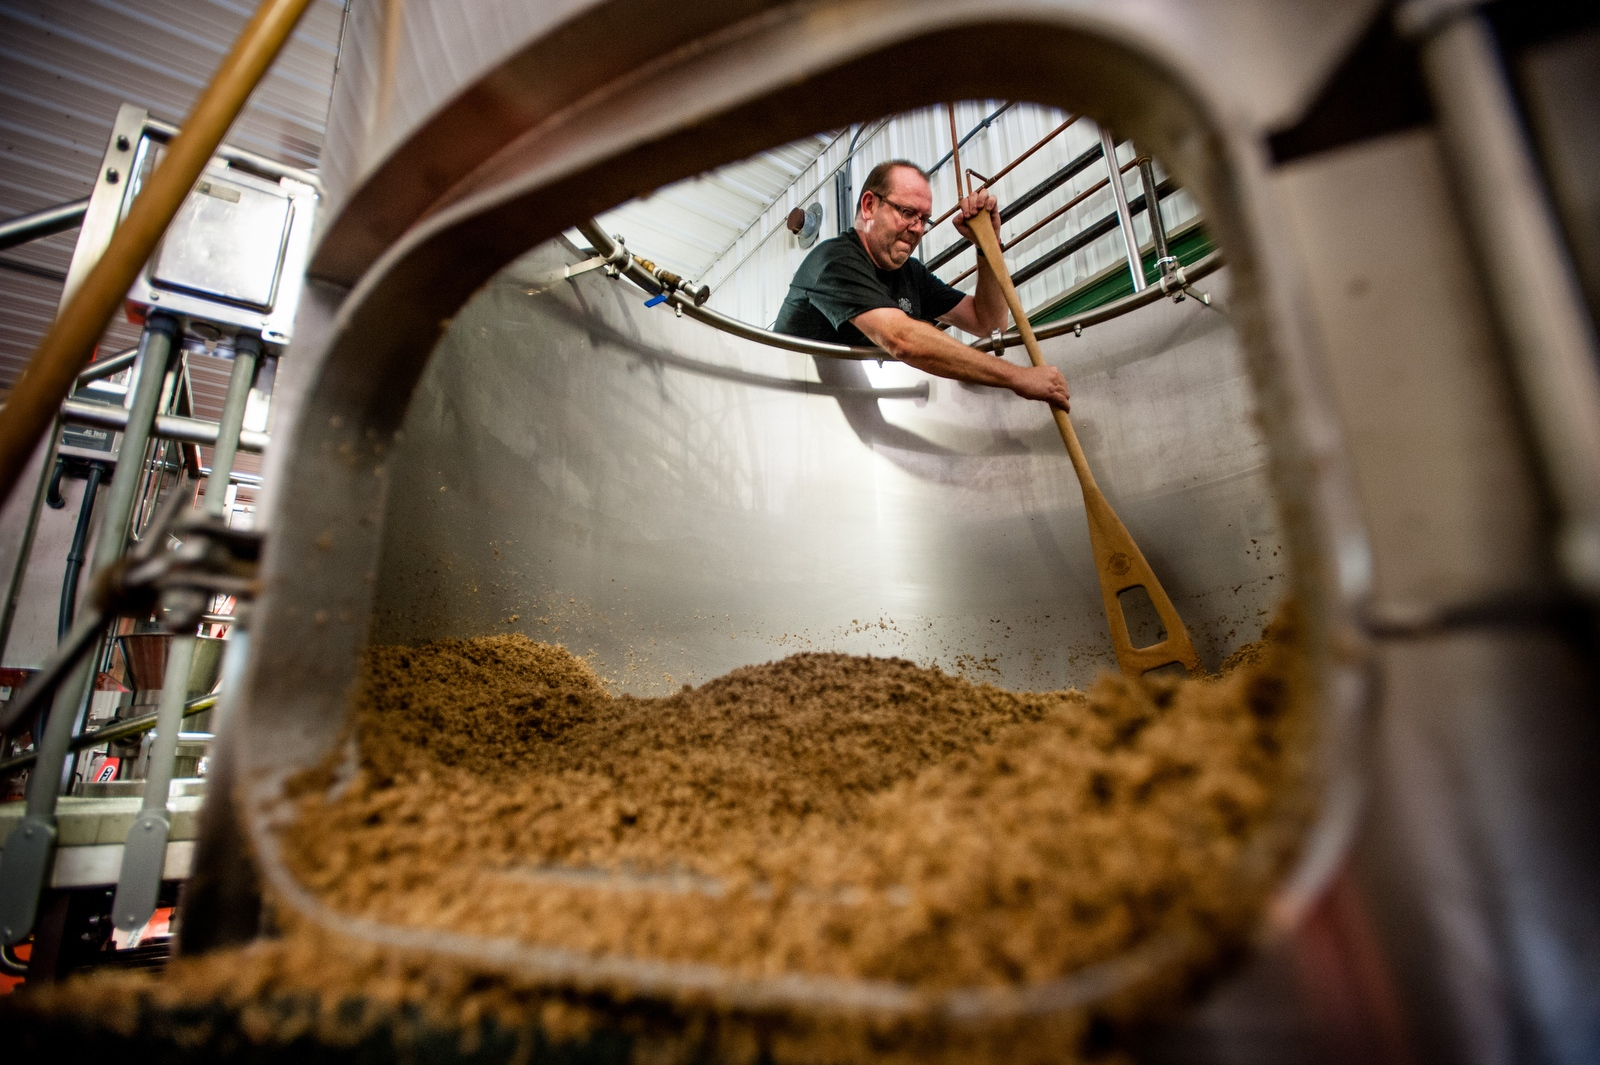 Steve Parkes cleans out the leftover ingredients from the bottom of a brewing tank at the Drop-In Brewing Company, Middlebury, Vermont.